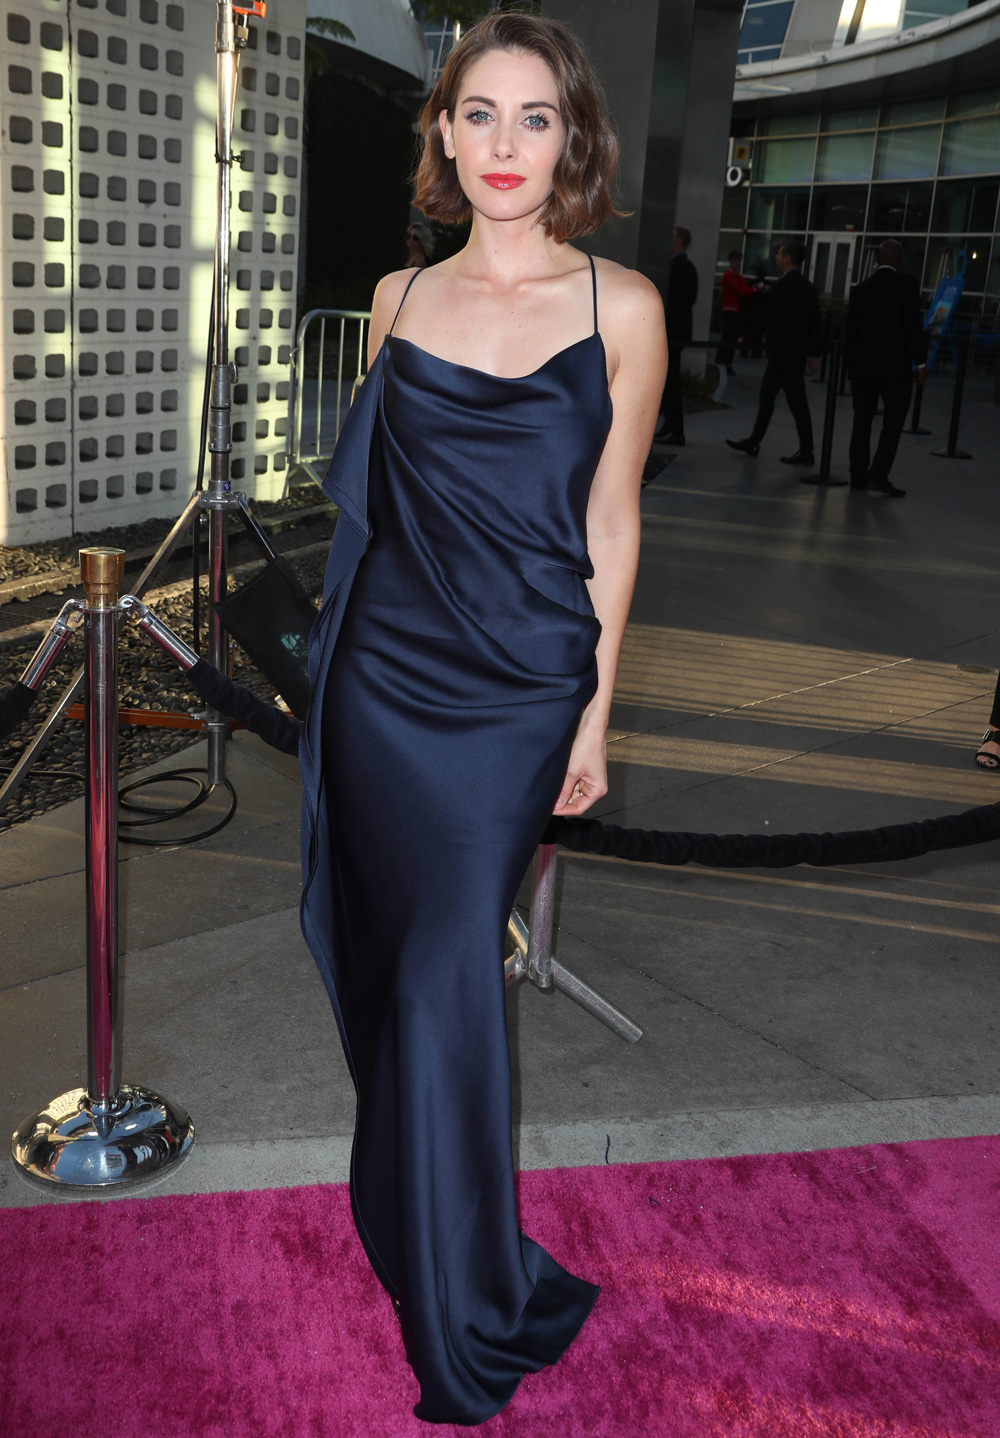 Alison Brie in Custom Jason Wu Gown for Glow TV Show Premiere ...